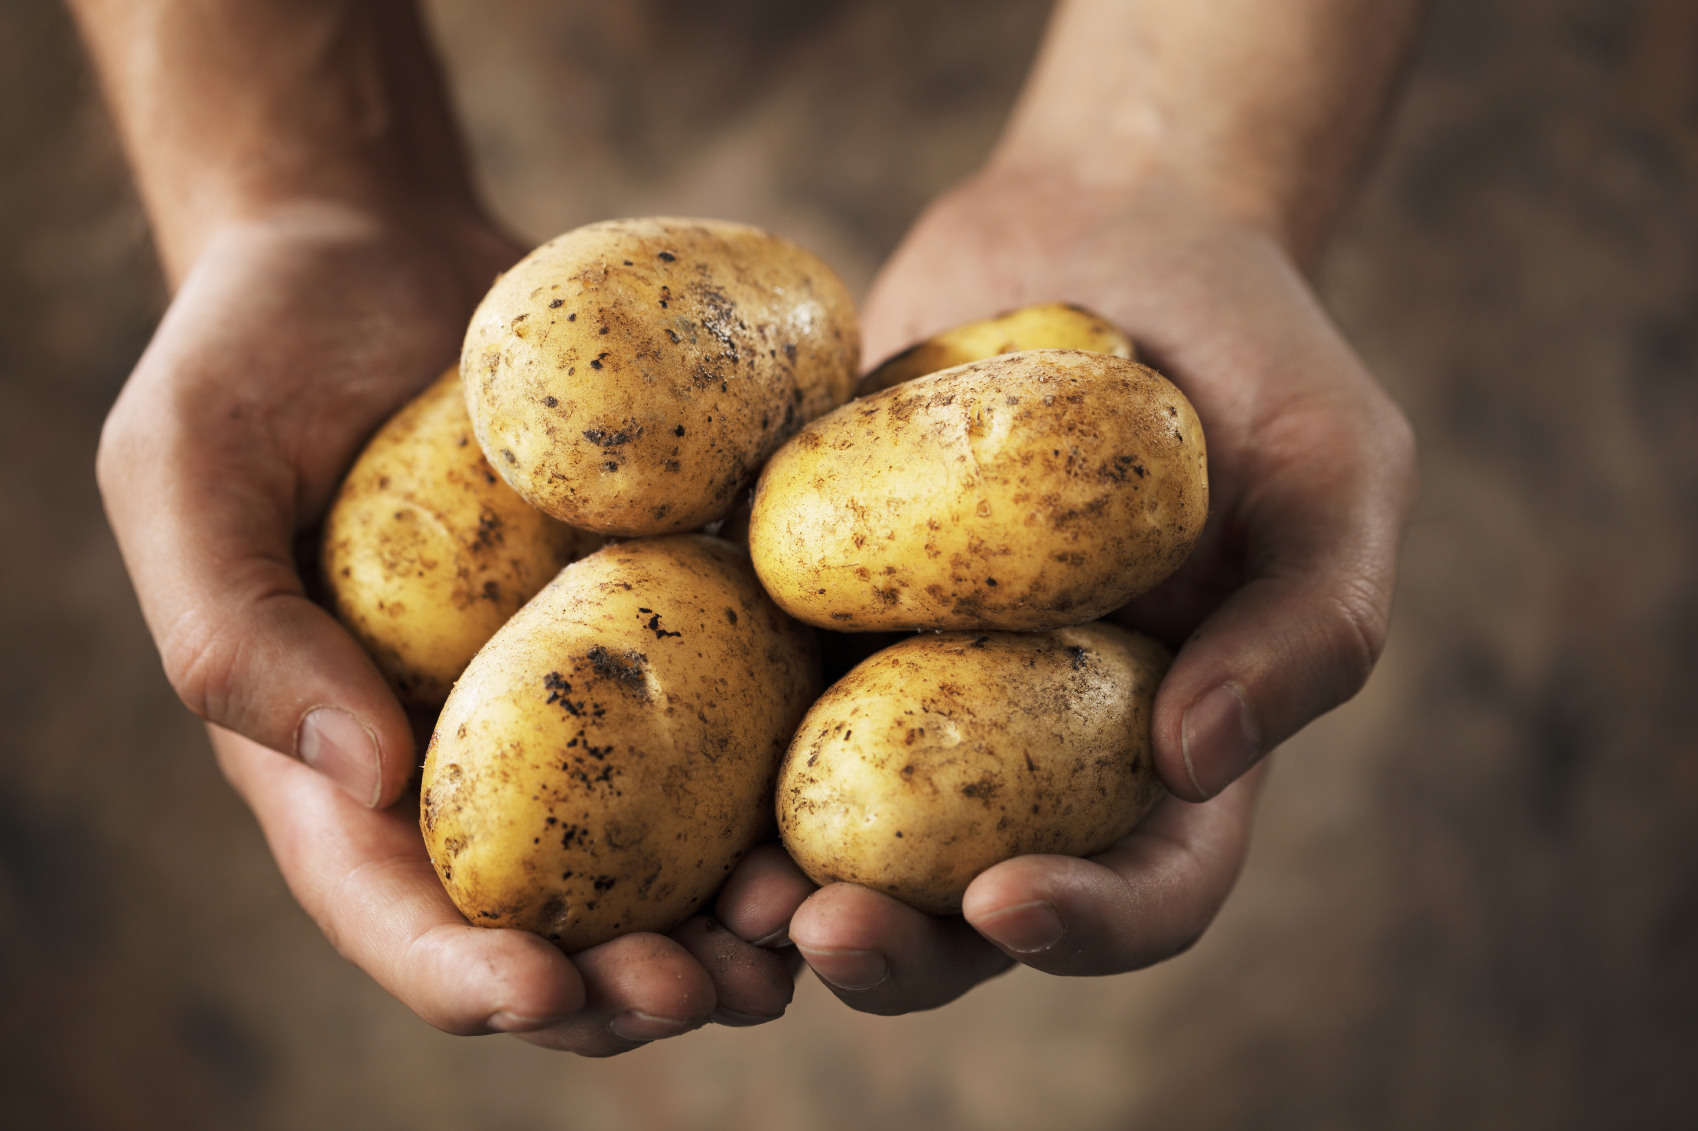 New Strain of GMO Potatoes Gets FDA Approval | Nature's